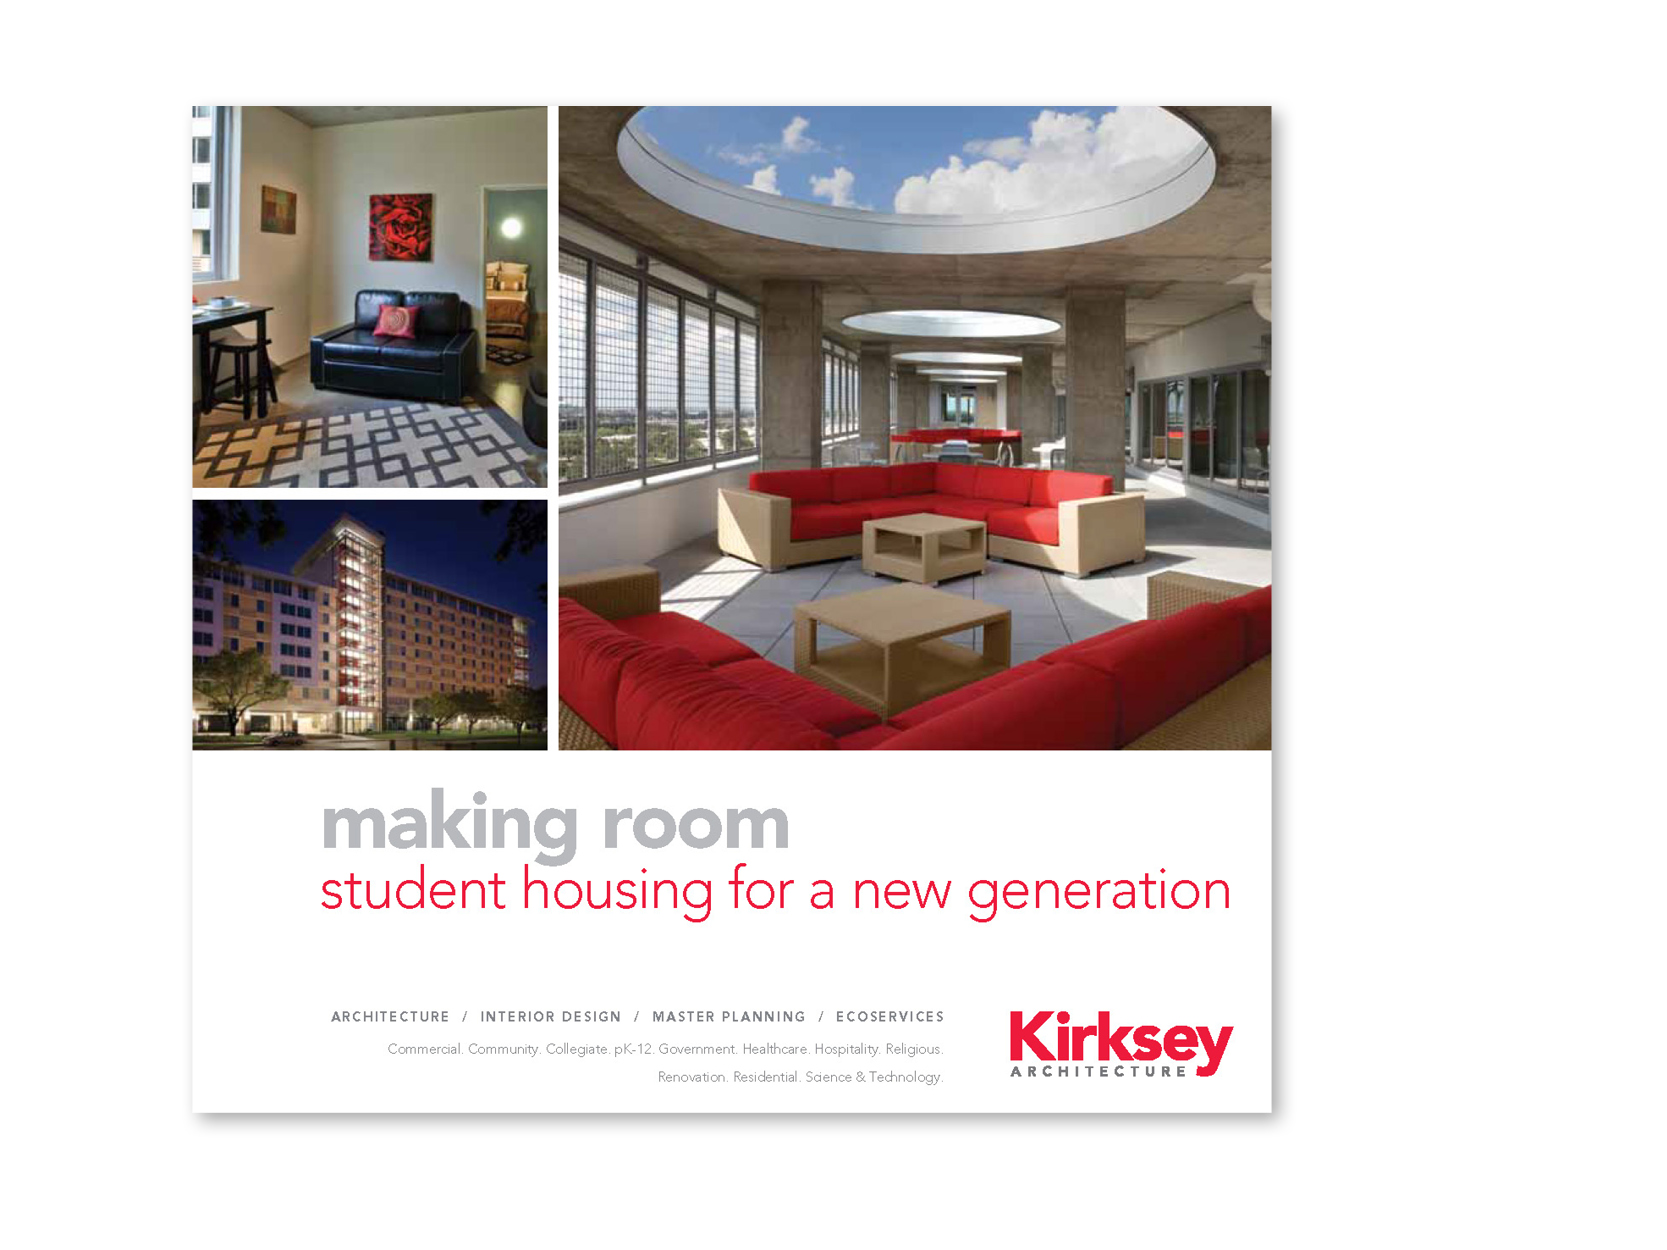 Preview of the resource library item for Making Room: Student Housing for a New Generation